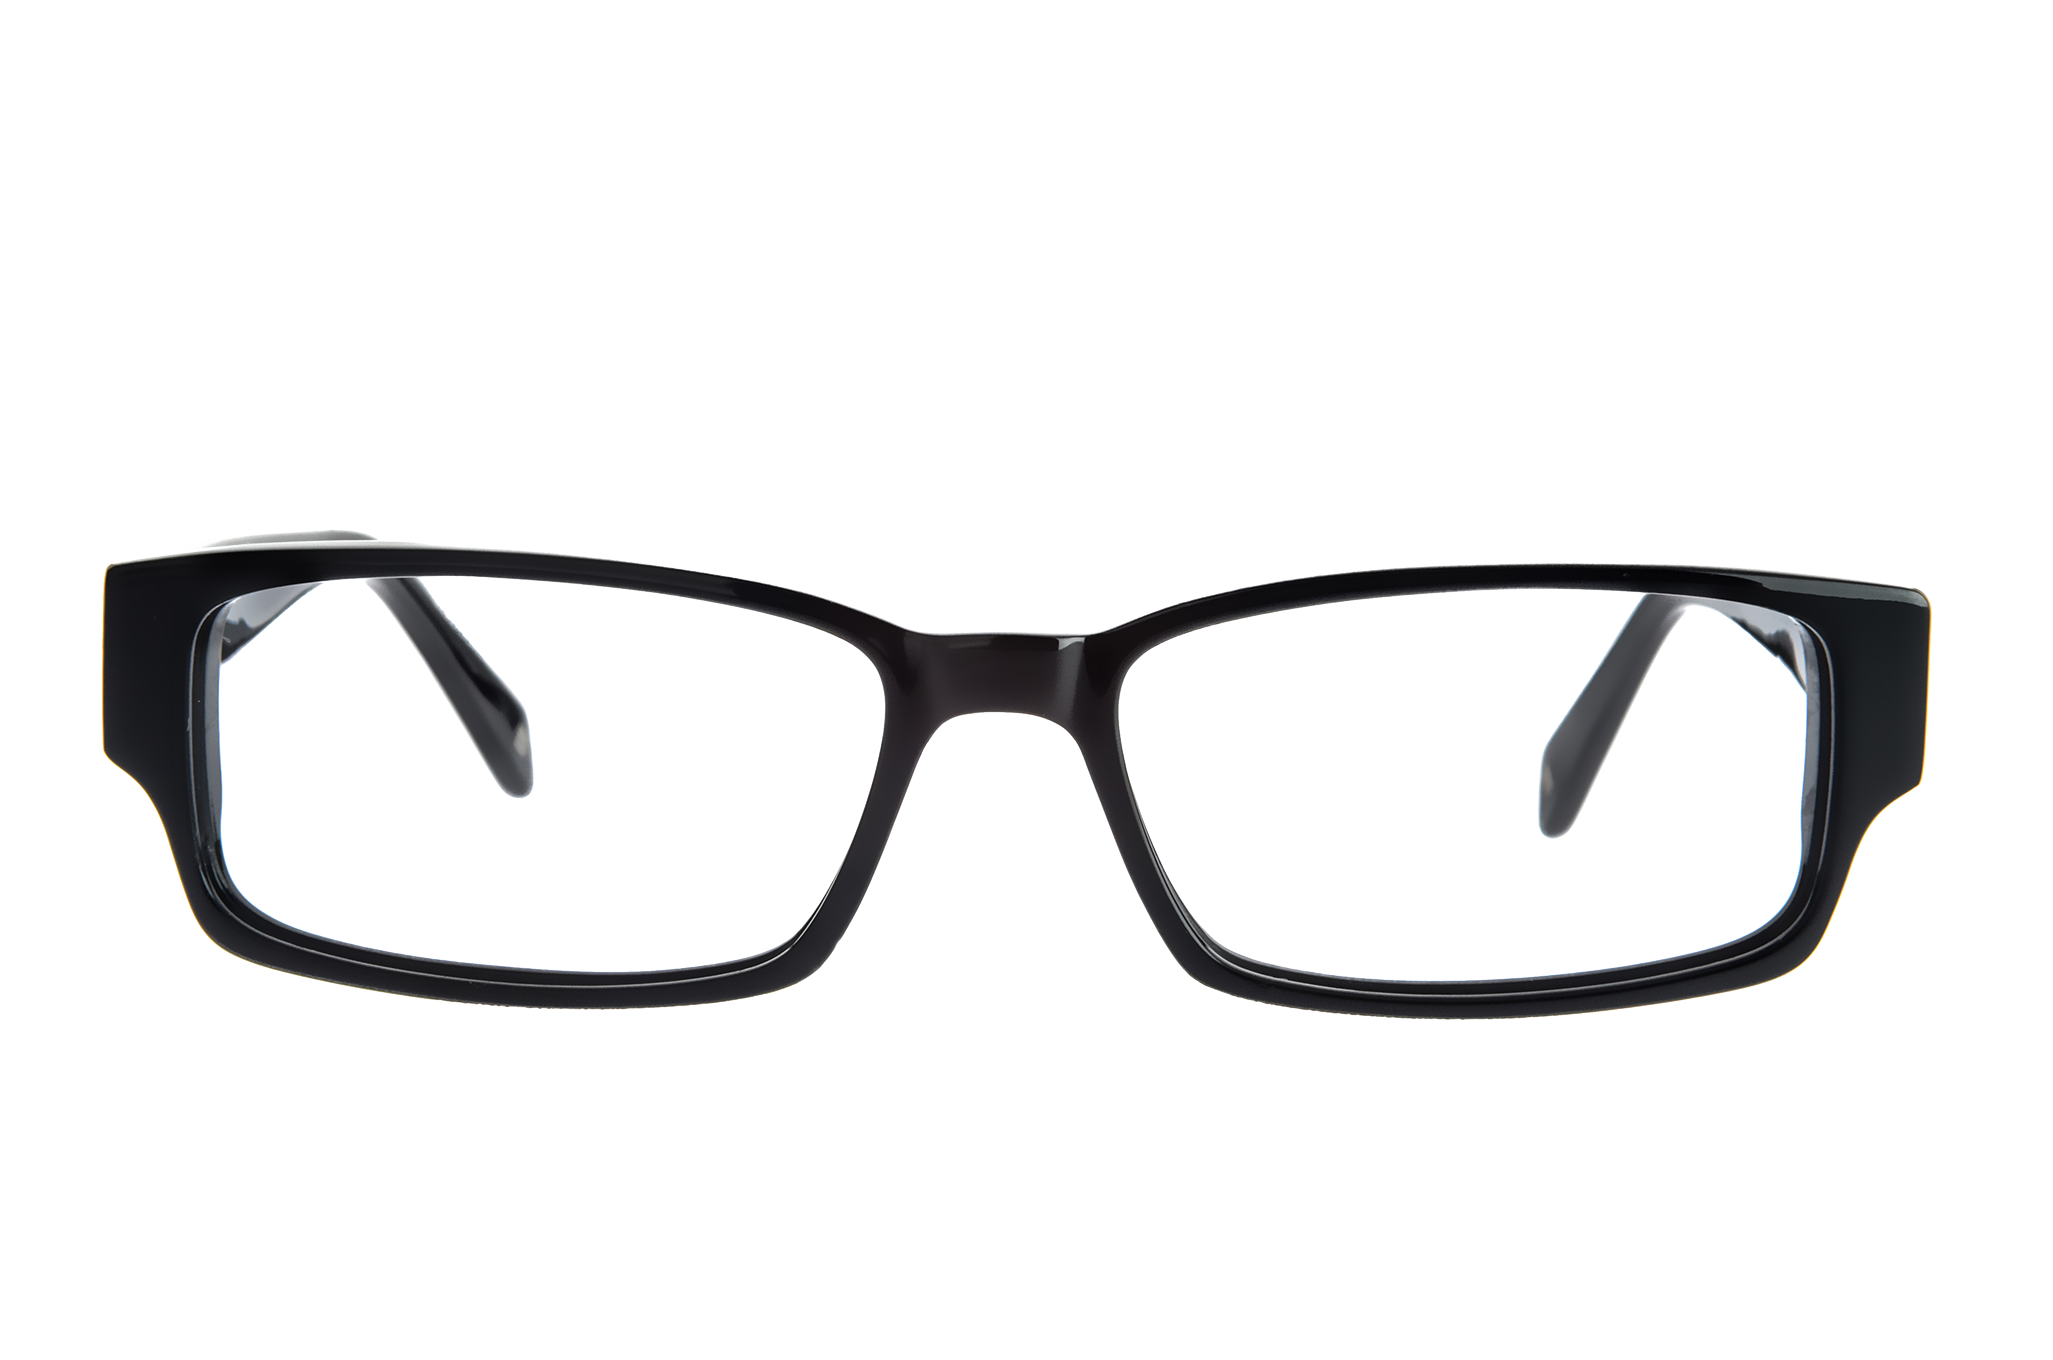 sunglasses transparent png